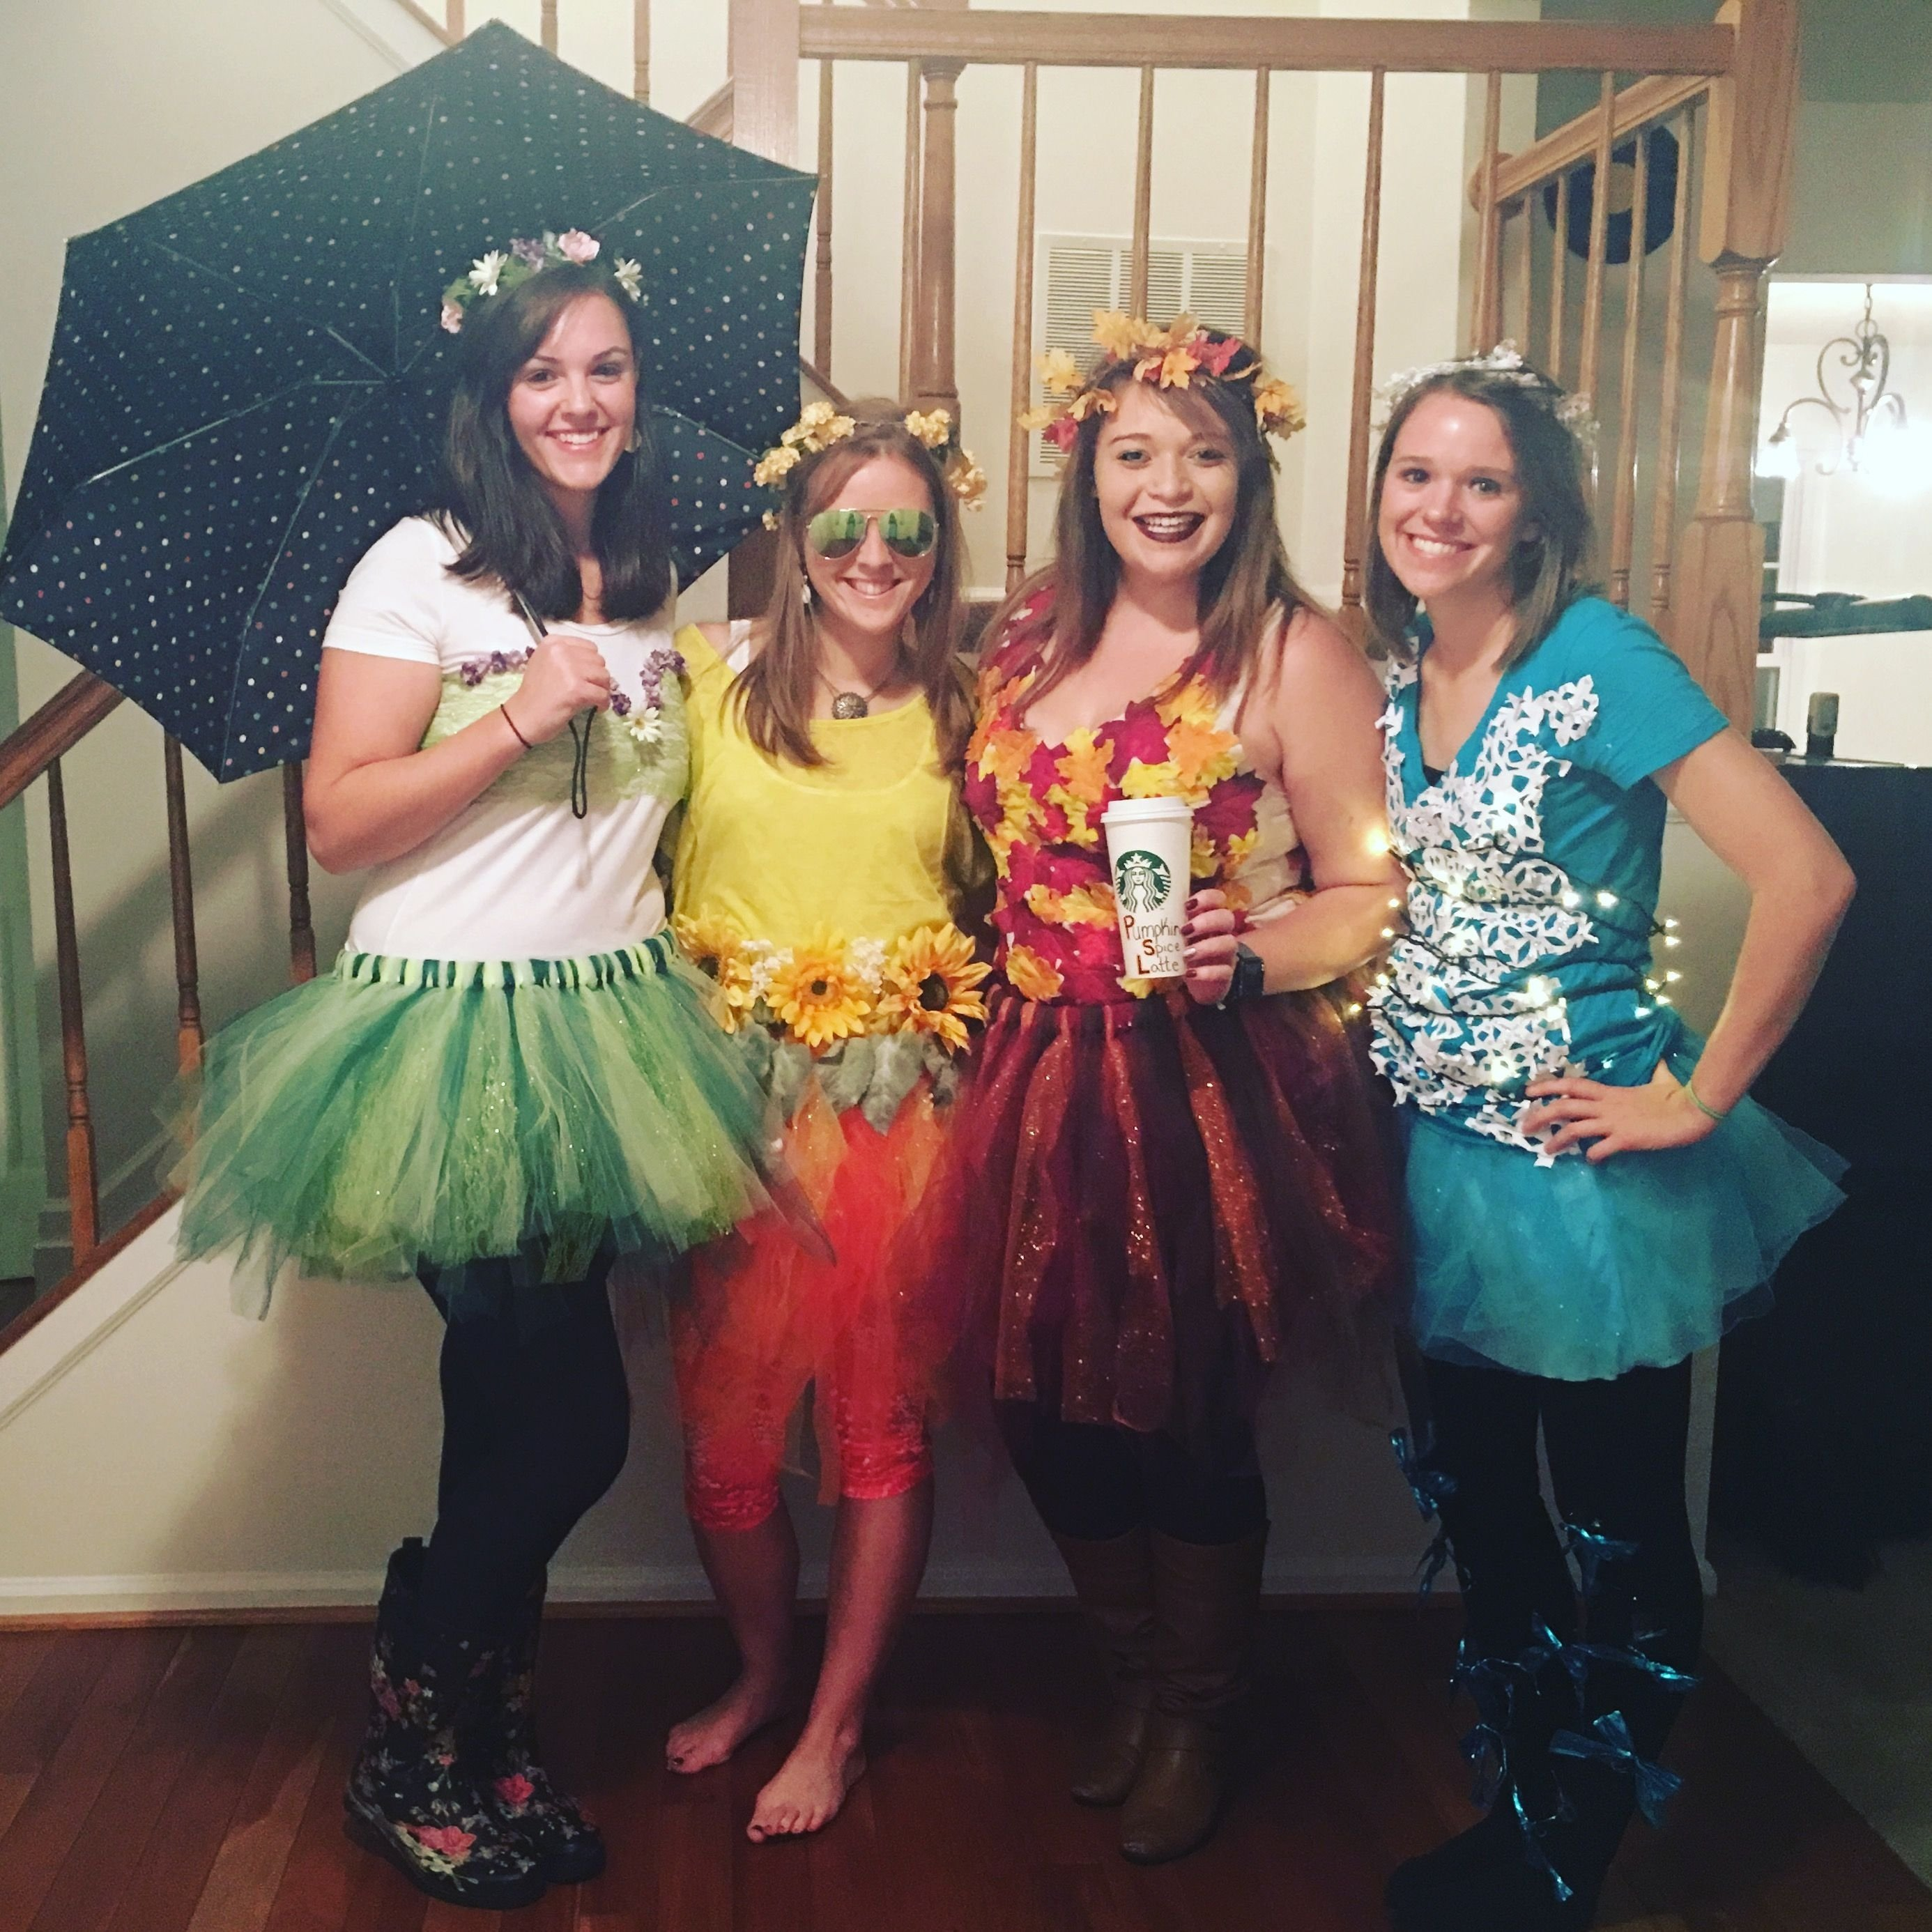 10 Famous Costume Ideas For Four People halloween costume the four seasons 2016 creative four people